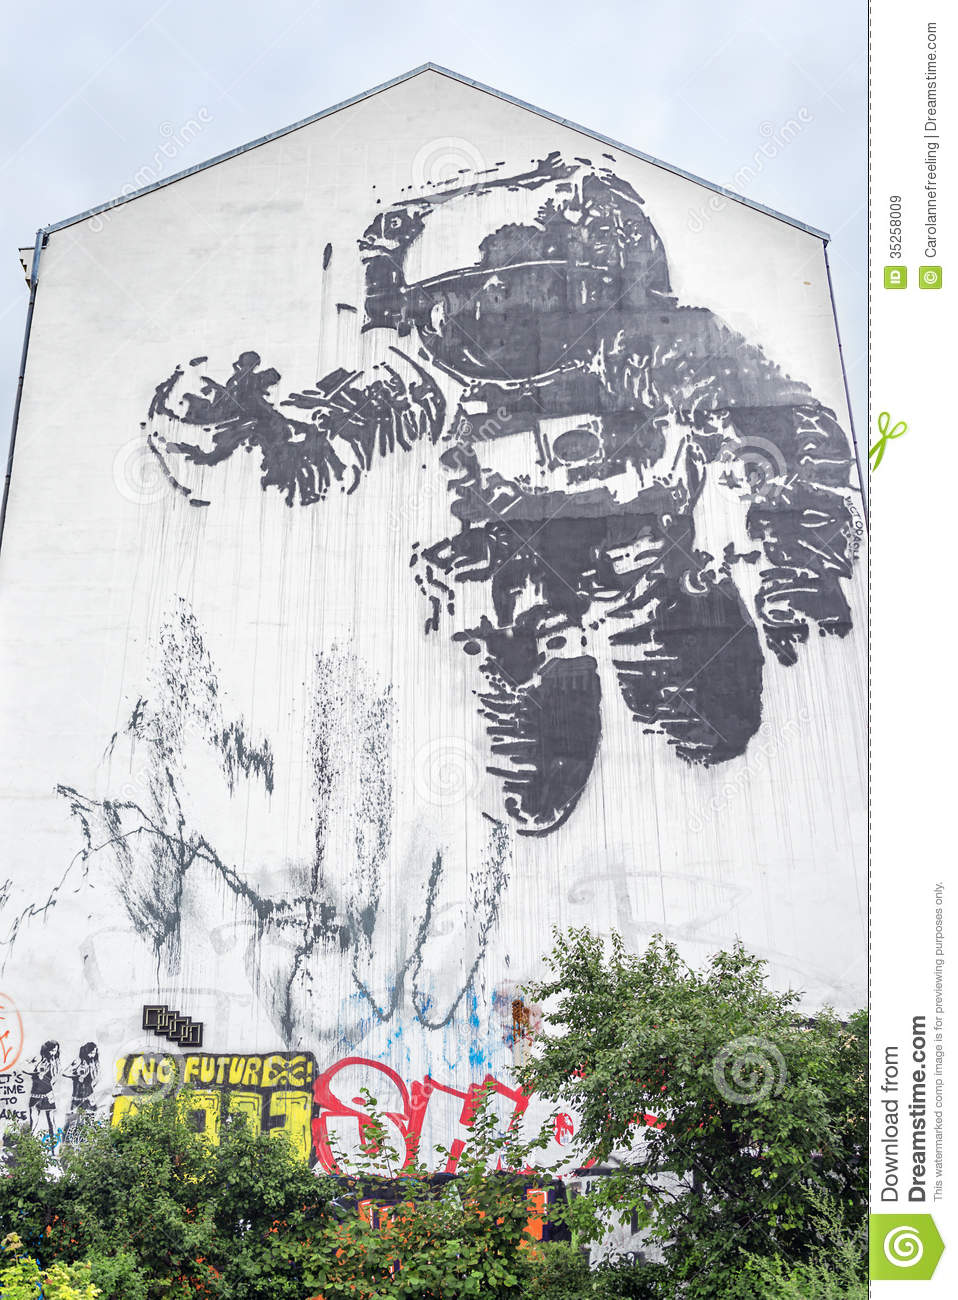 Artist Painting Mural Stock Photography